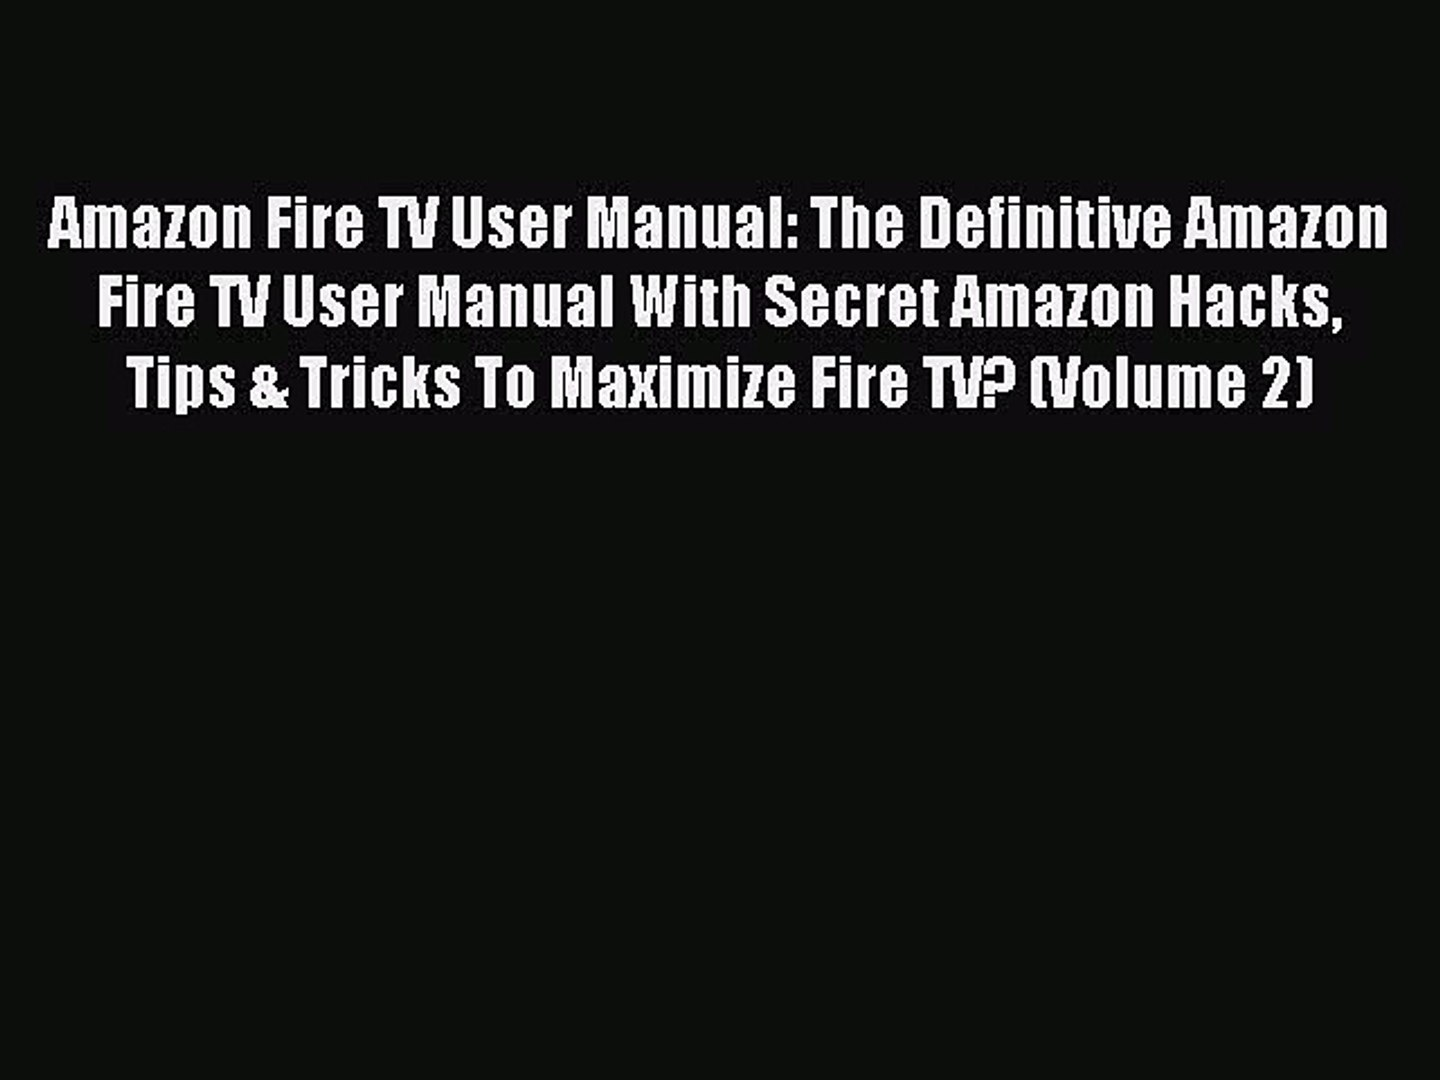 Read Amazon Fire TV User Manual: The Definitive Amazon Fire TV User Manual With Secret Amazon